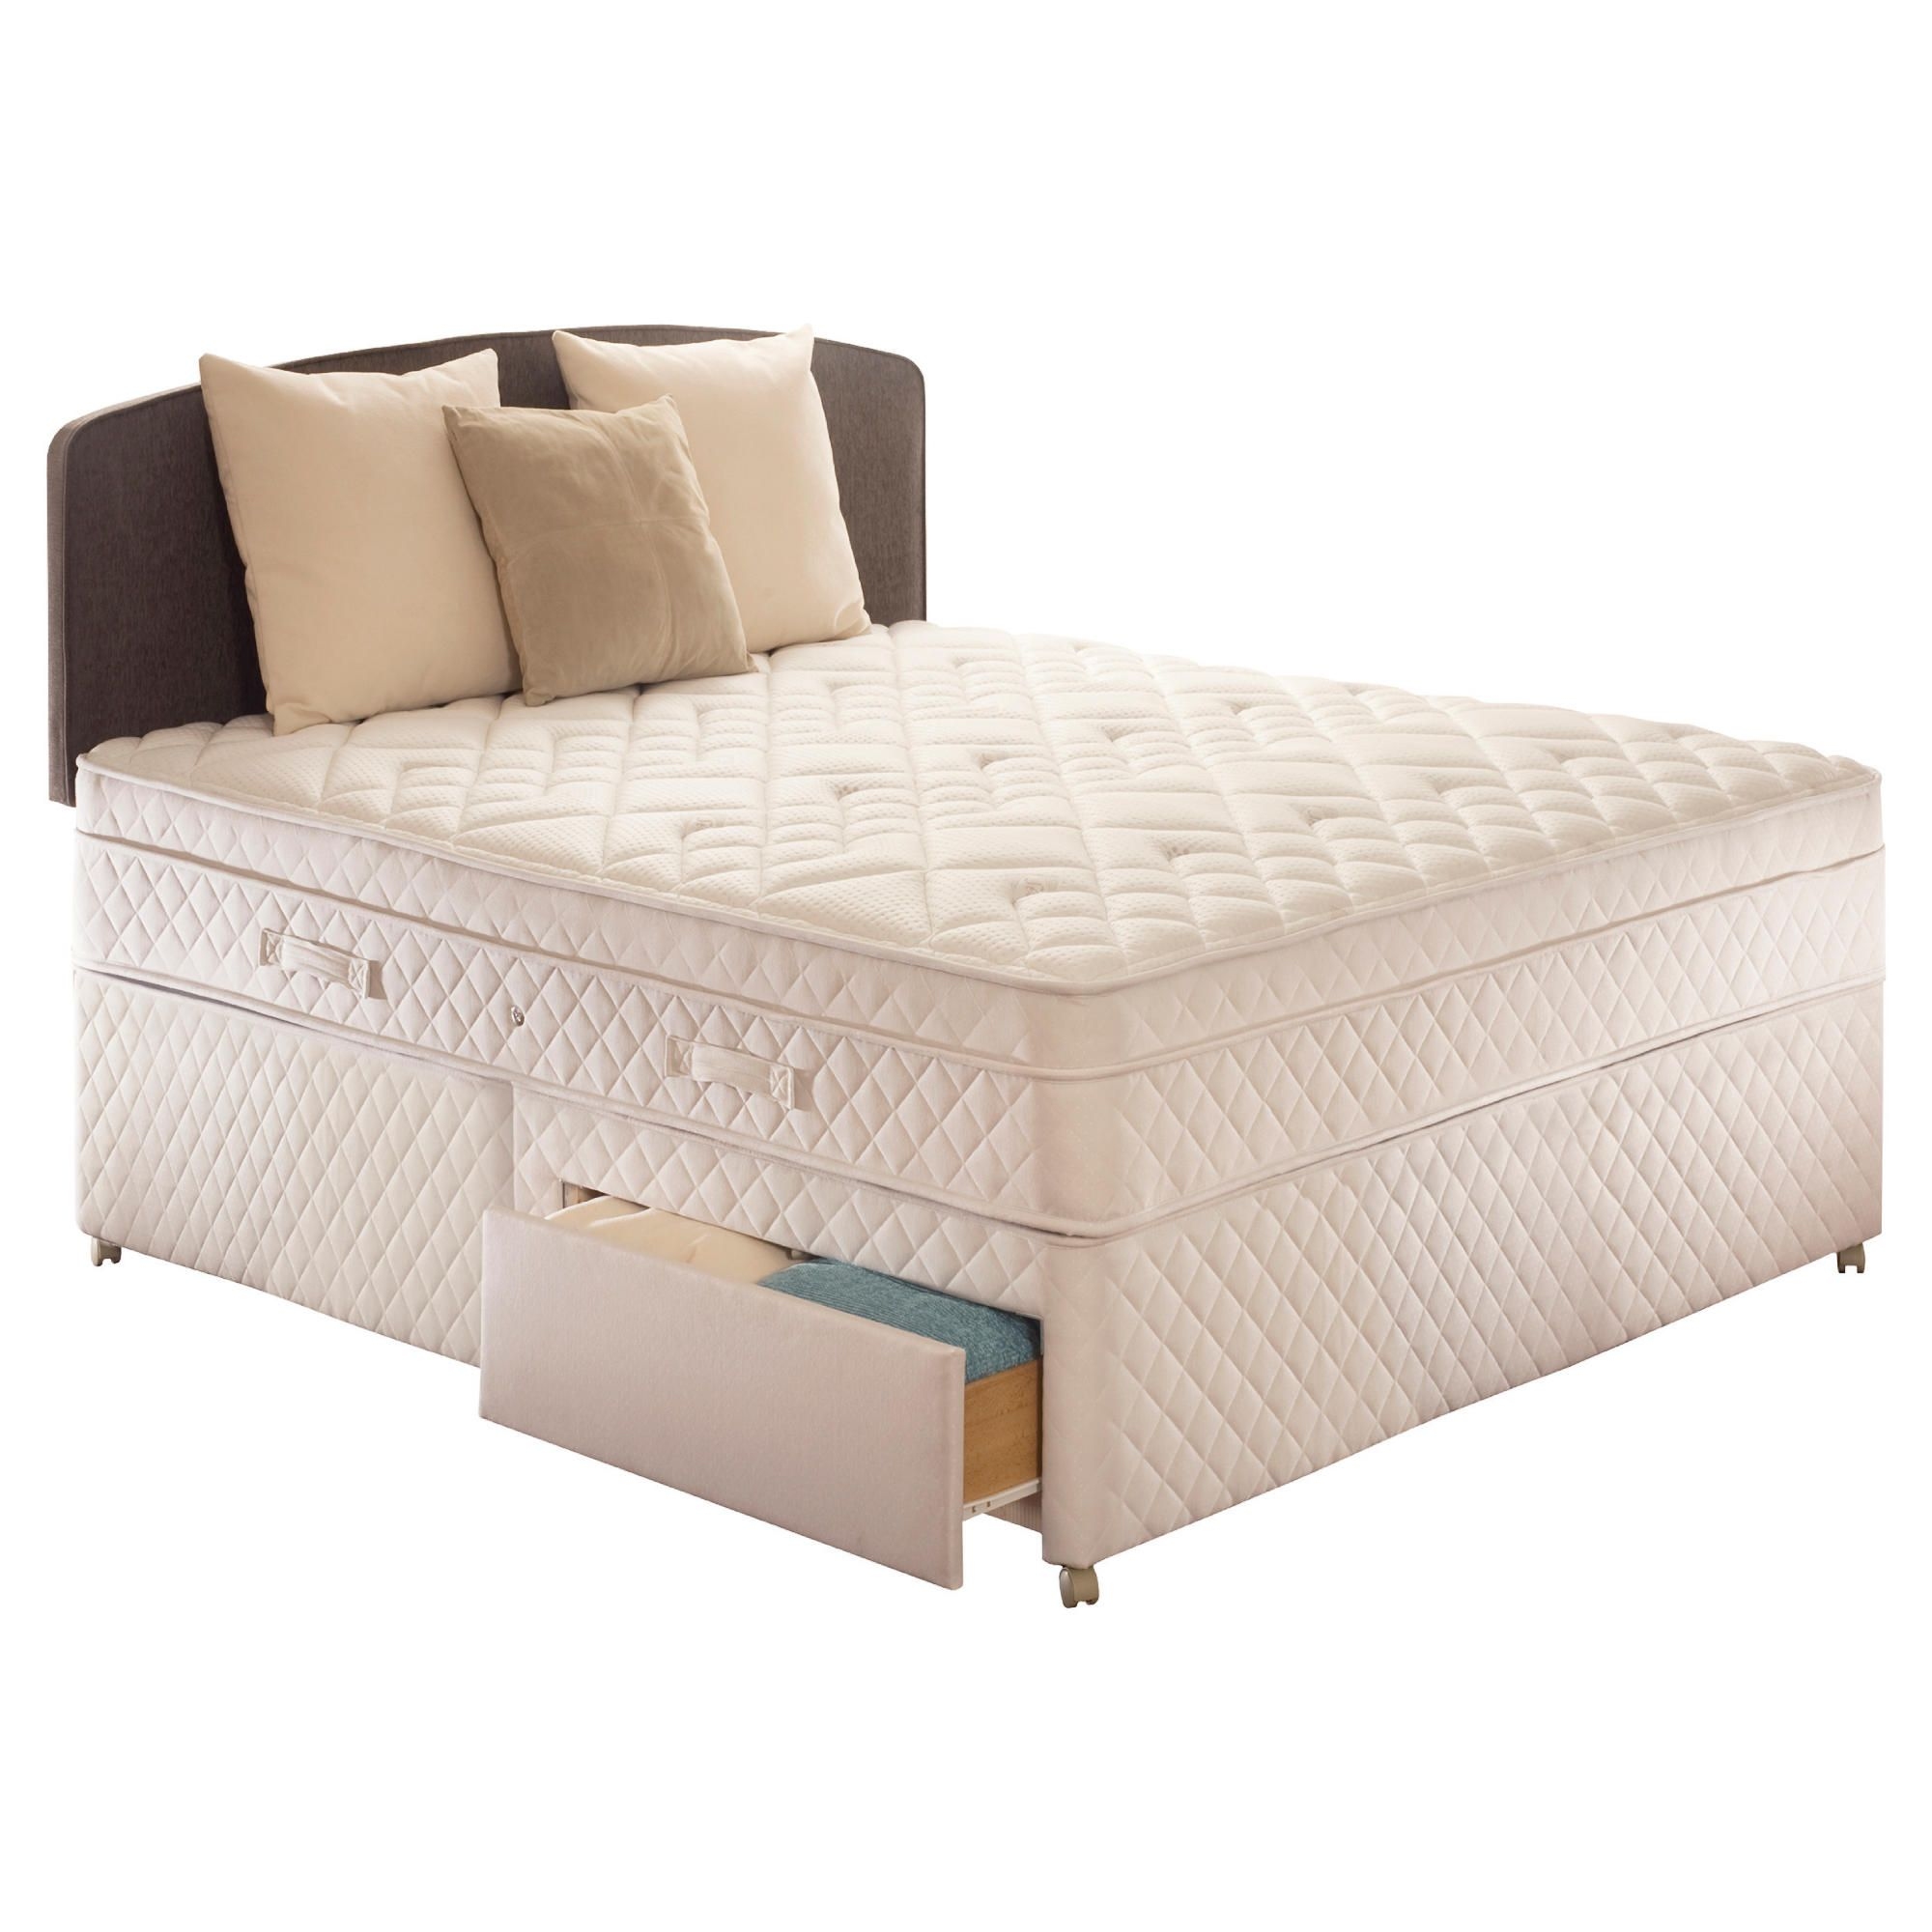 Sealy Diamond Excellence Double 2 Drawer Divan Bed at Tesco Direct